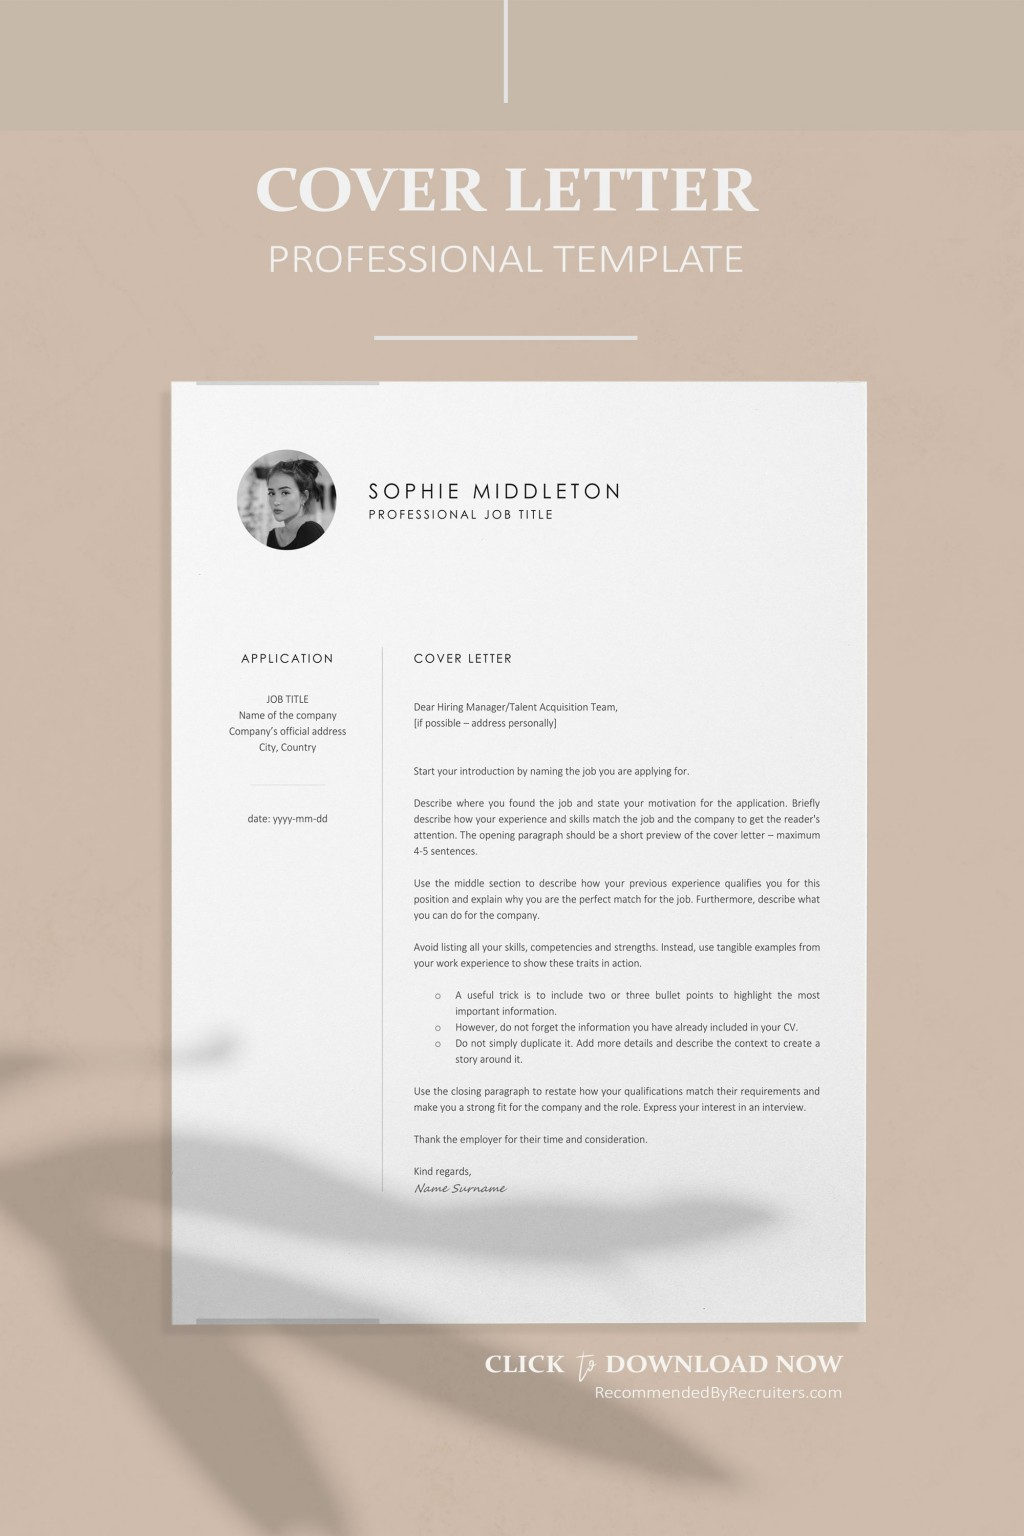 001 Imposing Download Cv And Cover Letter Template Sample  TemplatesLarge